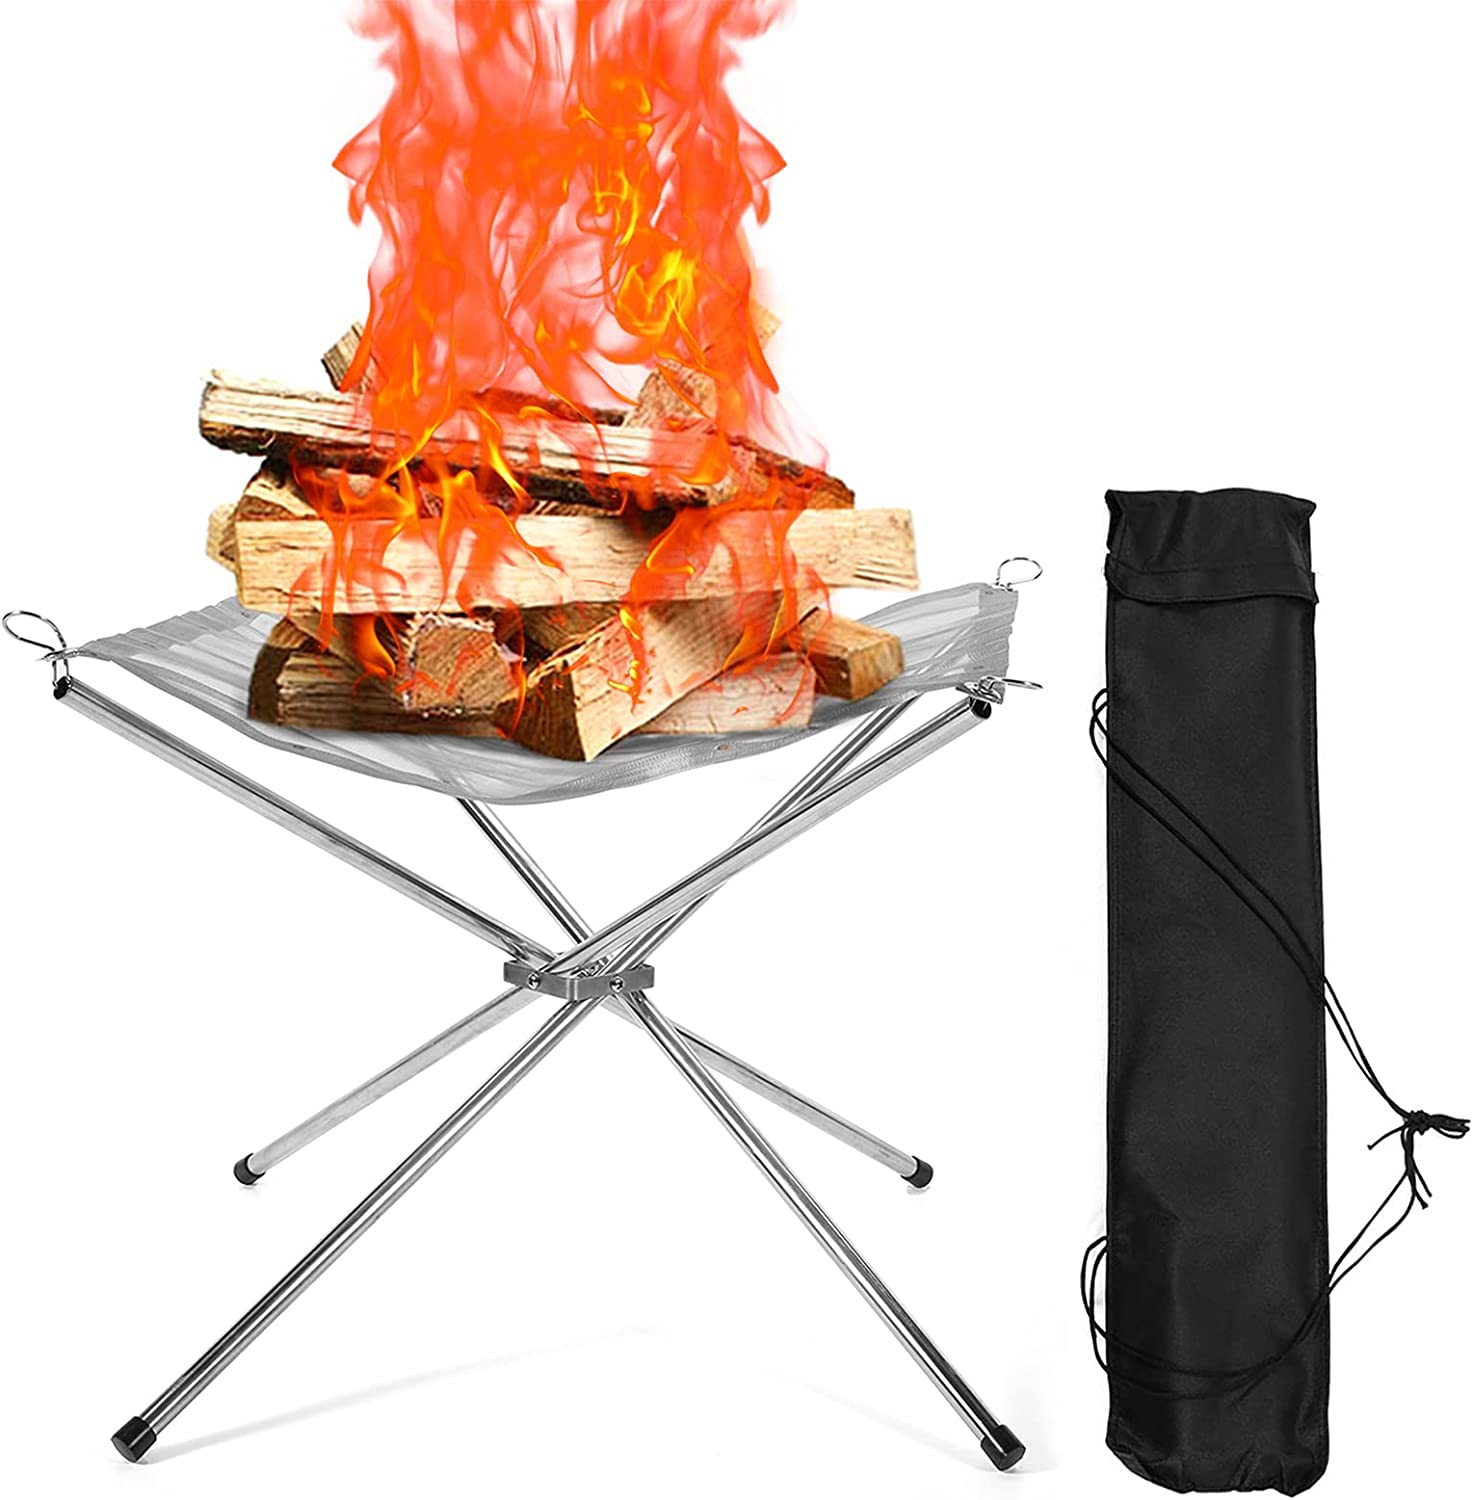 Portable Long-awaited Folding Fire Pit for Outdoor Wood Beach Camping Burning In stock